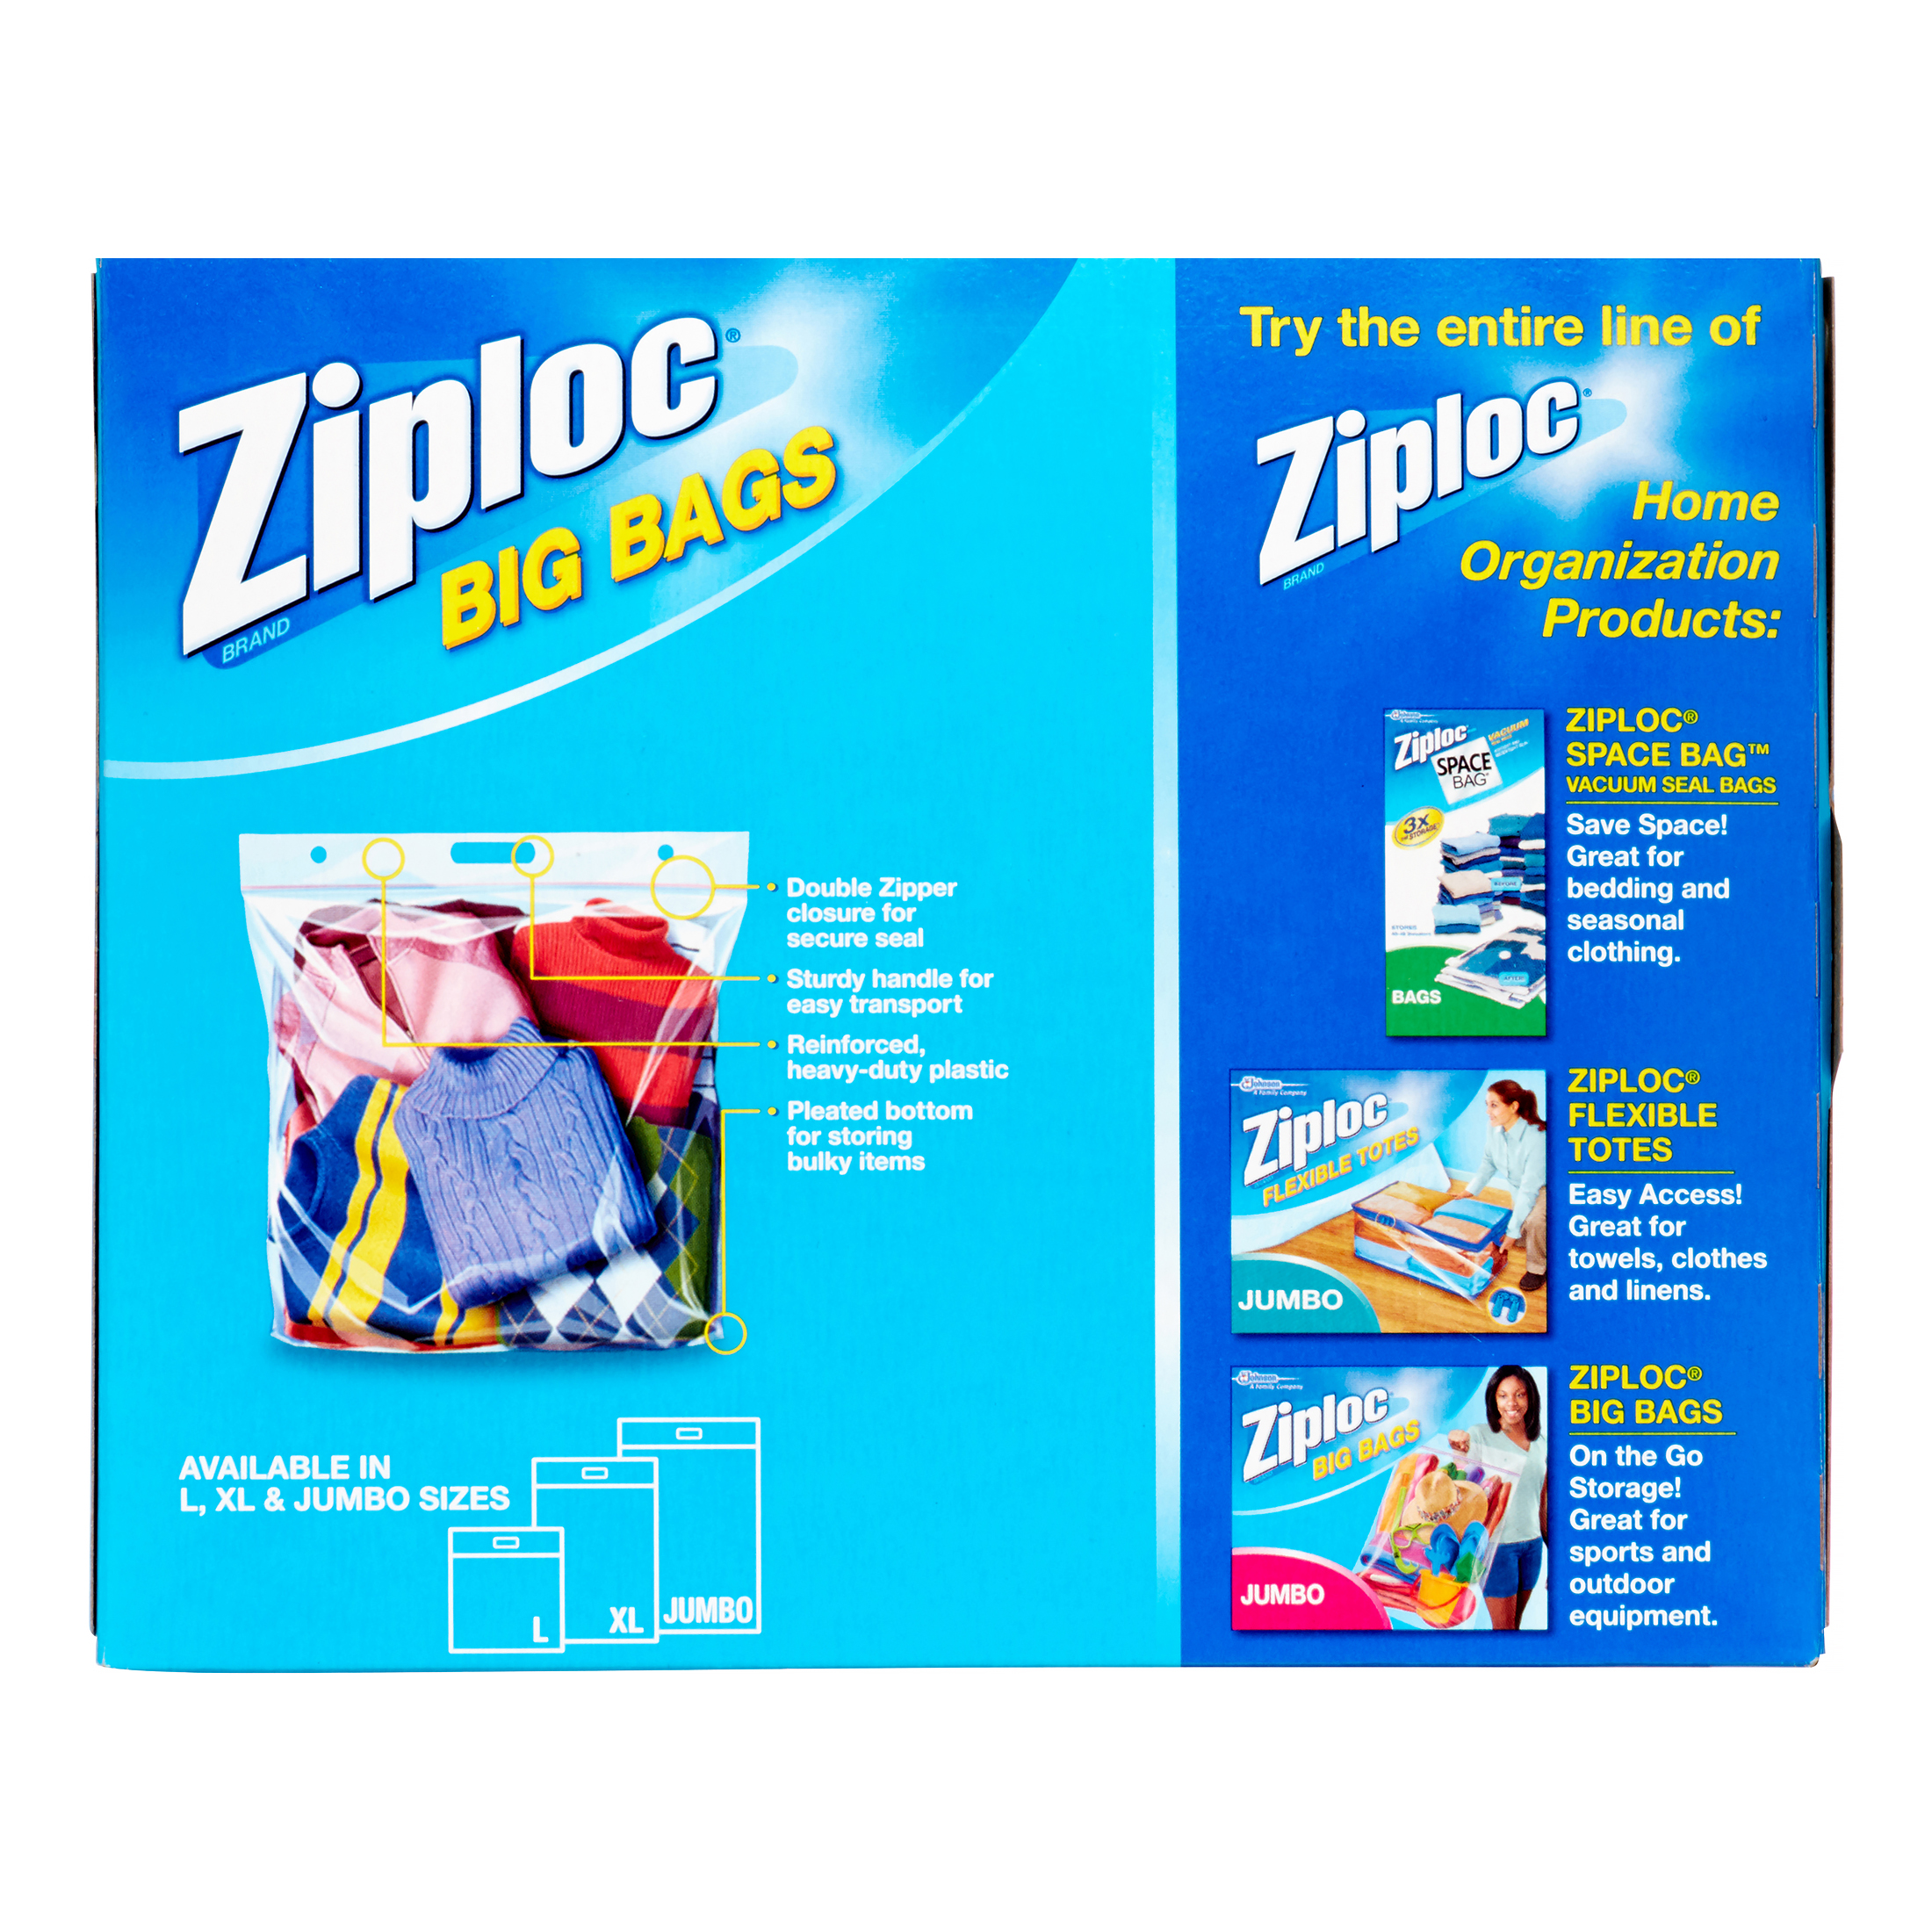 Ziploc bags for storing clothes